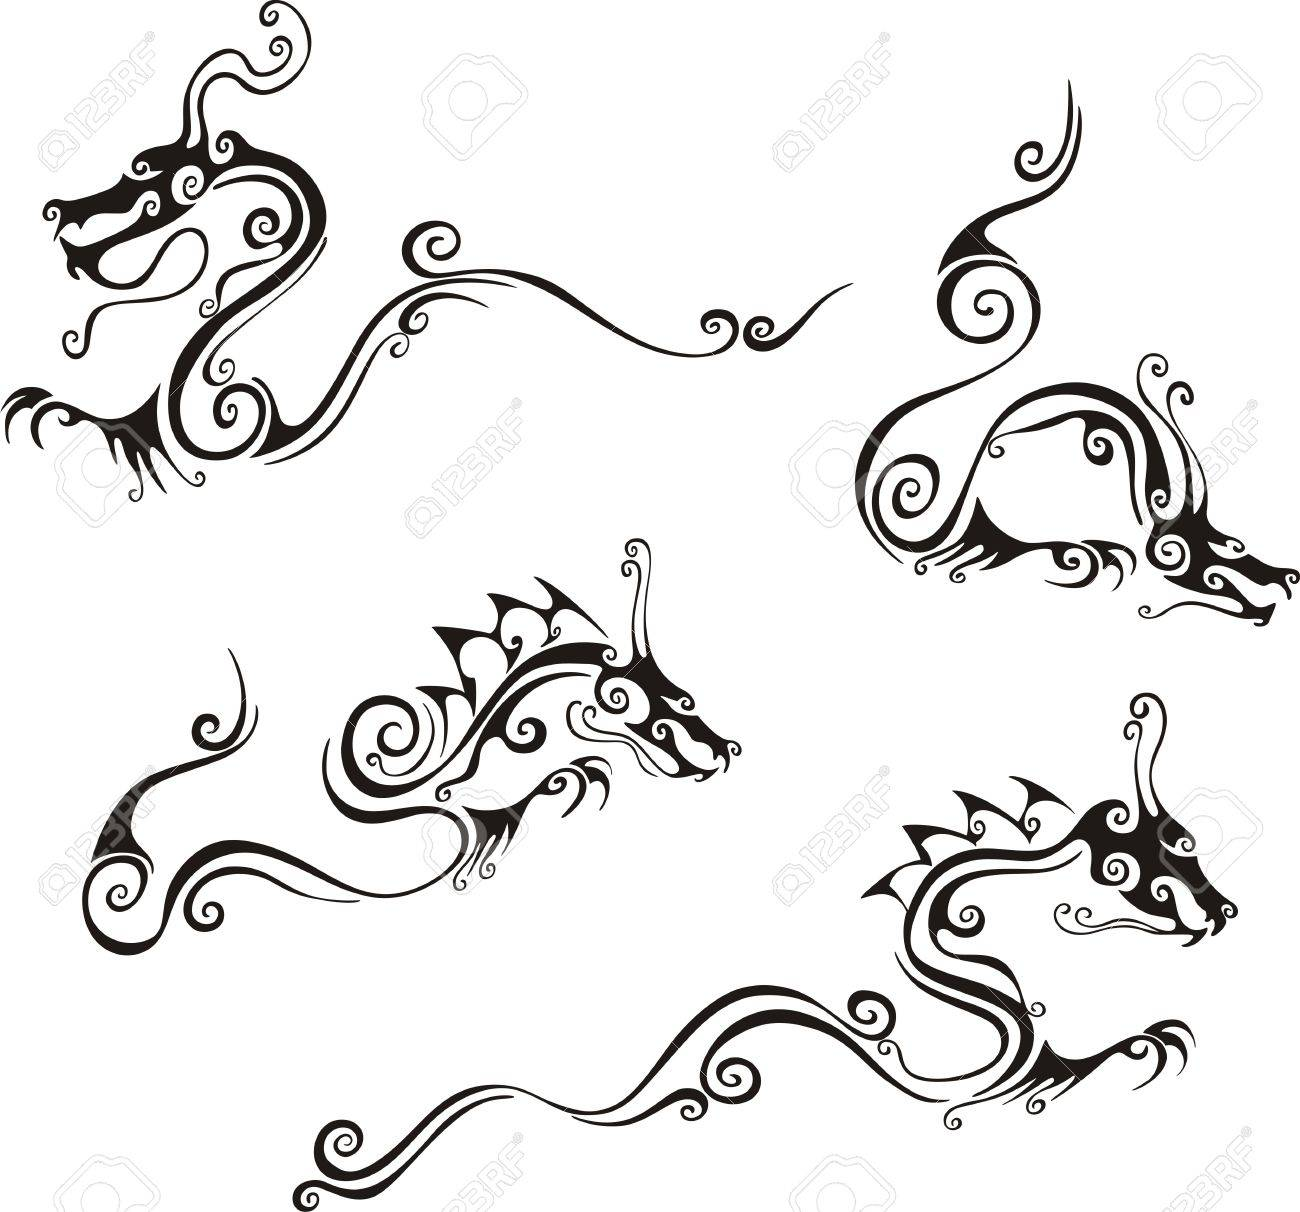 Stylistic dragon tattoos. Set of black and white vector illustrations. Stock Vector - 18830710